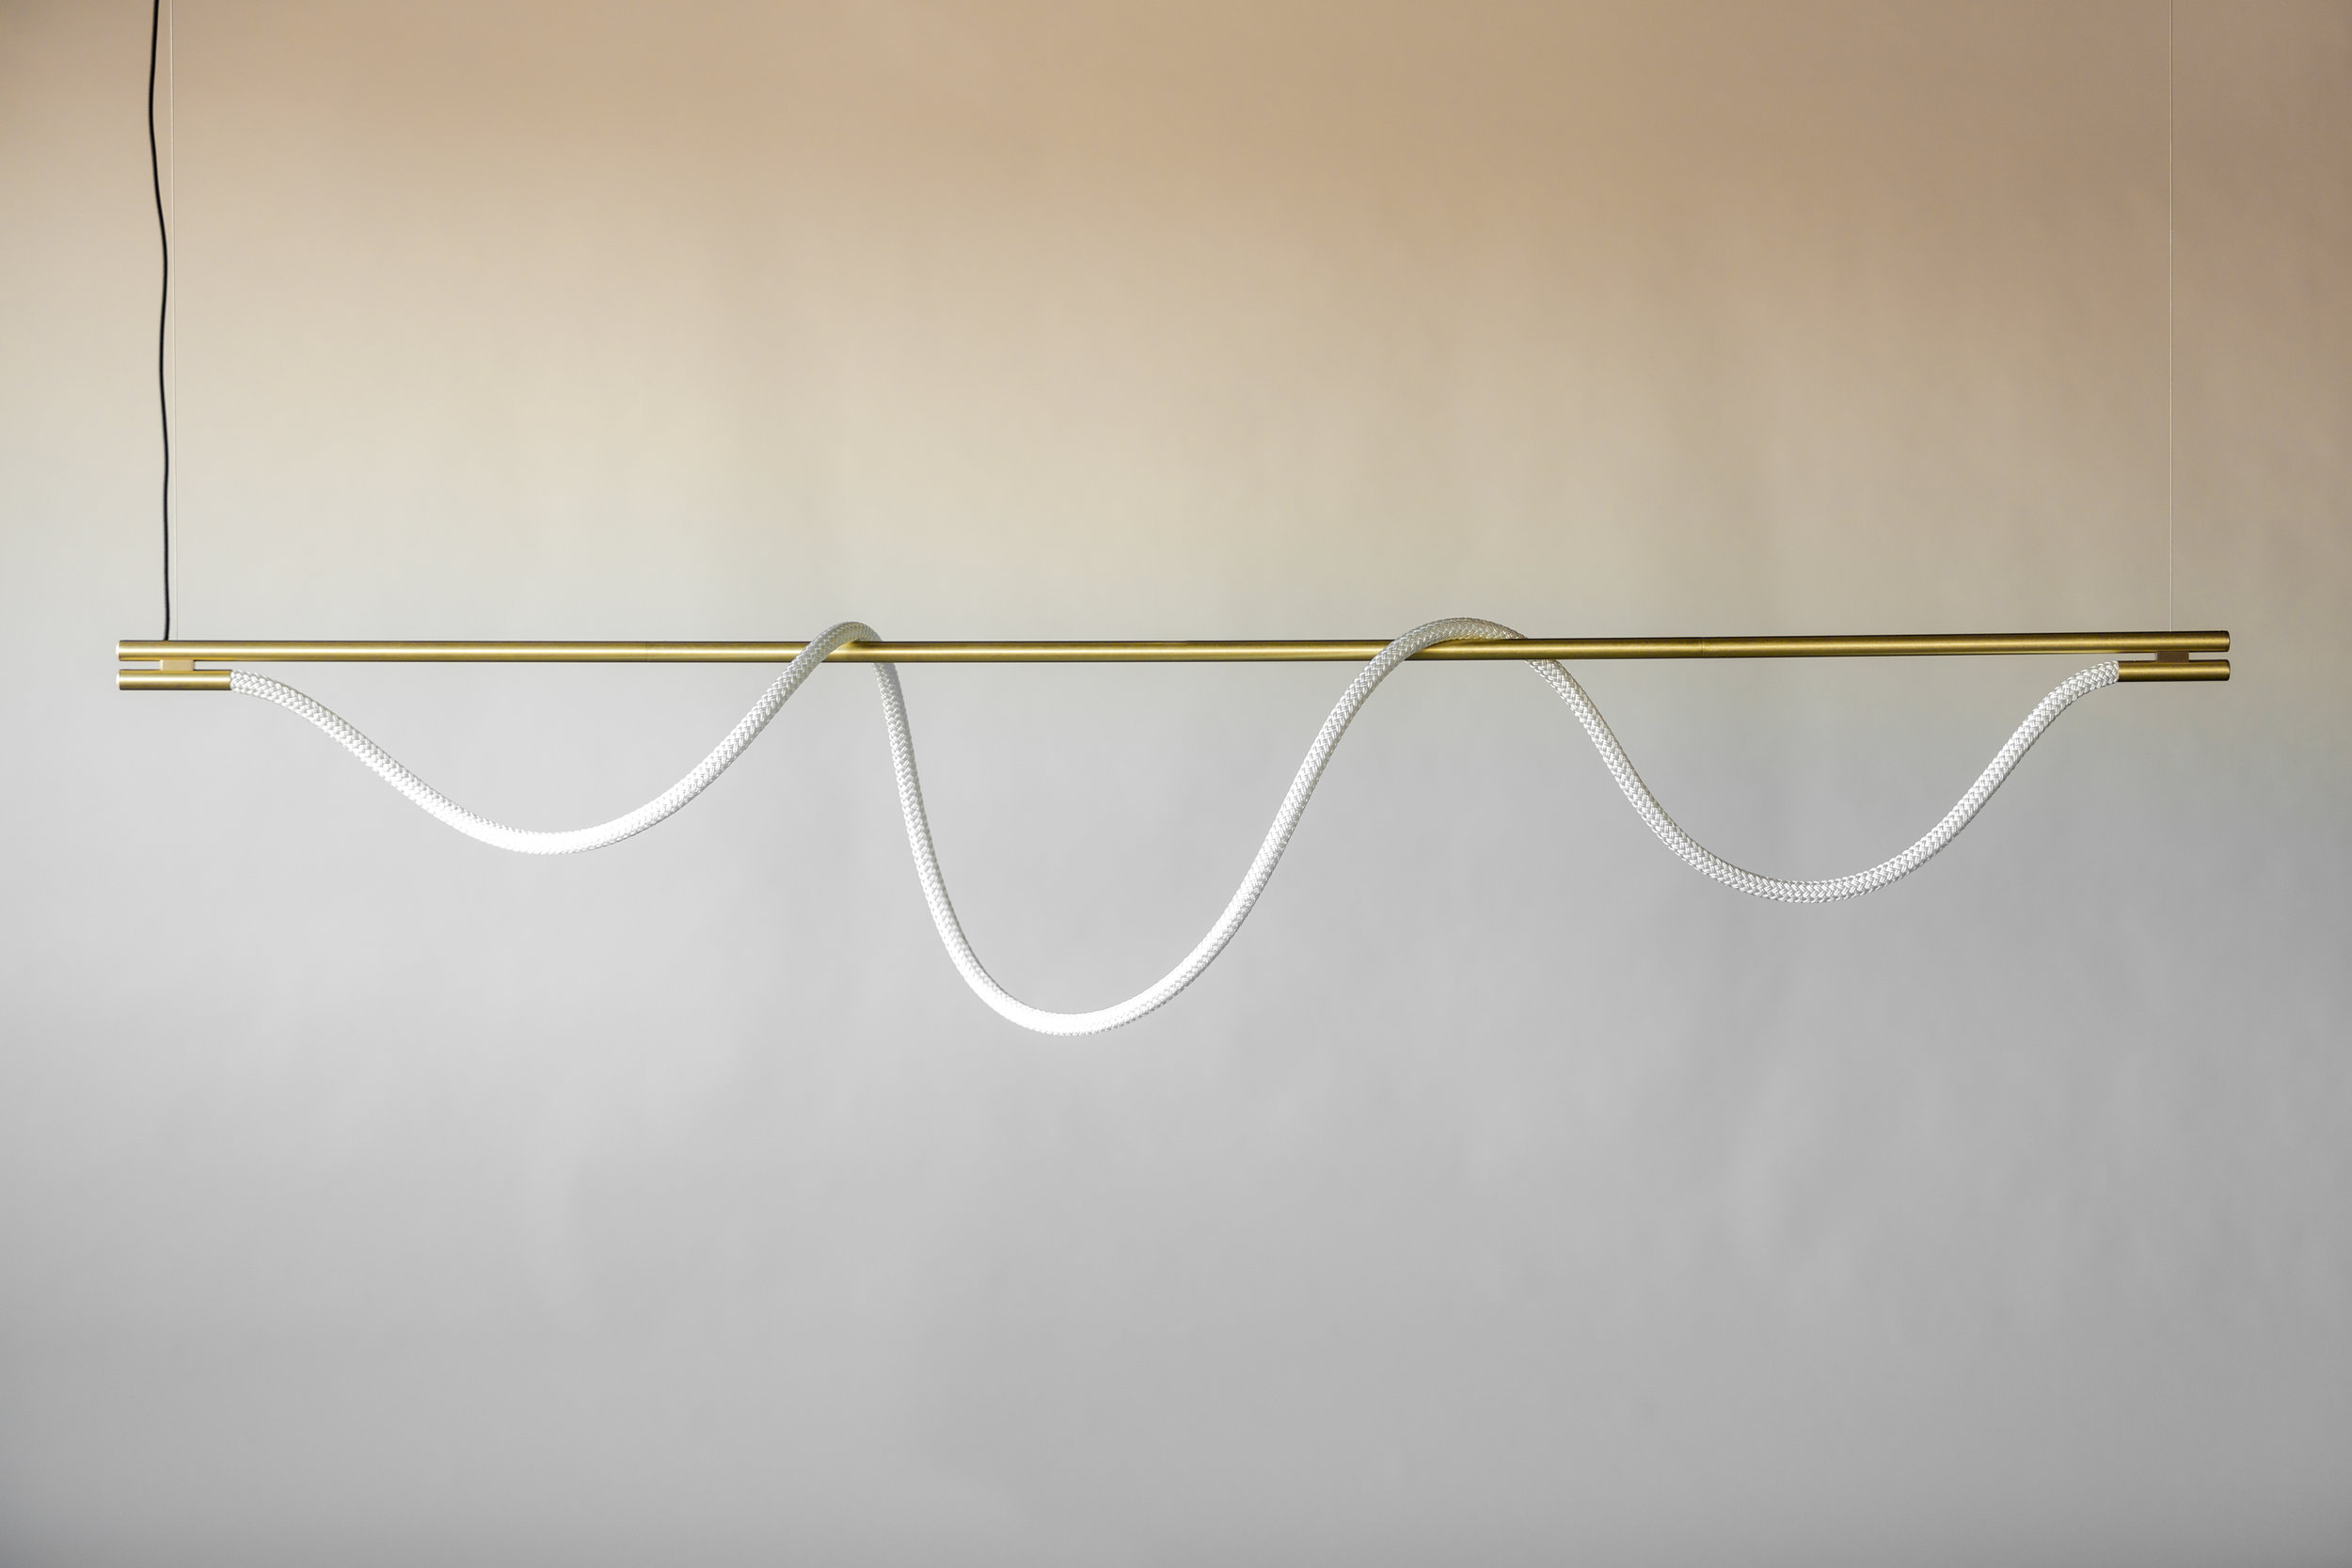 8' Surrey Suspension IV - Cable  (pictured in Satin Brass / turned off)